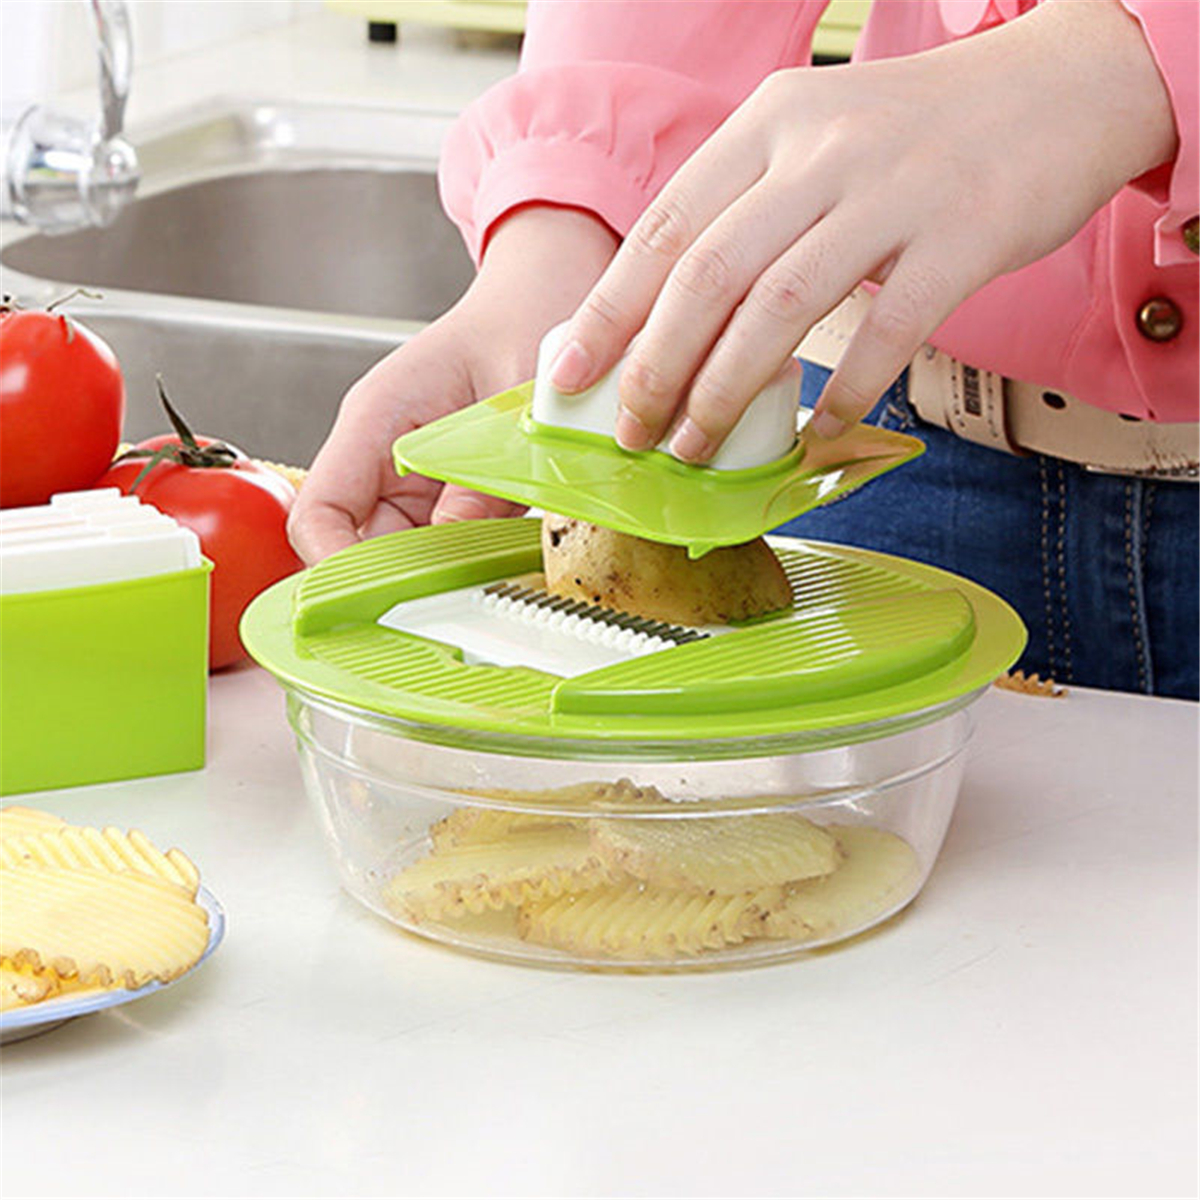 5 In 1 Multifunctional Fruit Vegetable Cutter Slicer Chopper Gadgets Tool Fruit Slicing Tools Vegetable Cutter